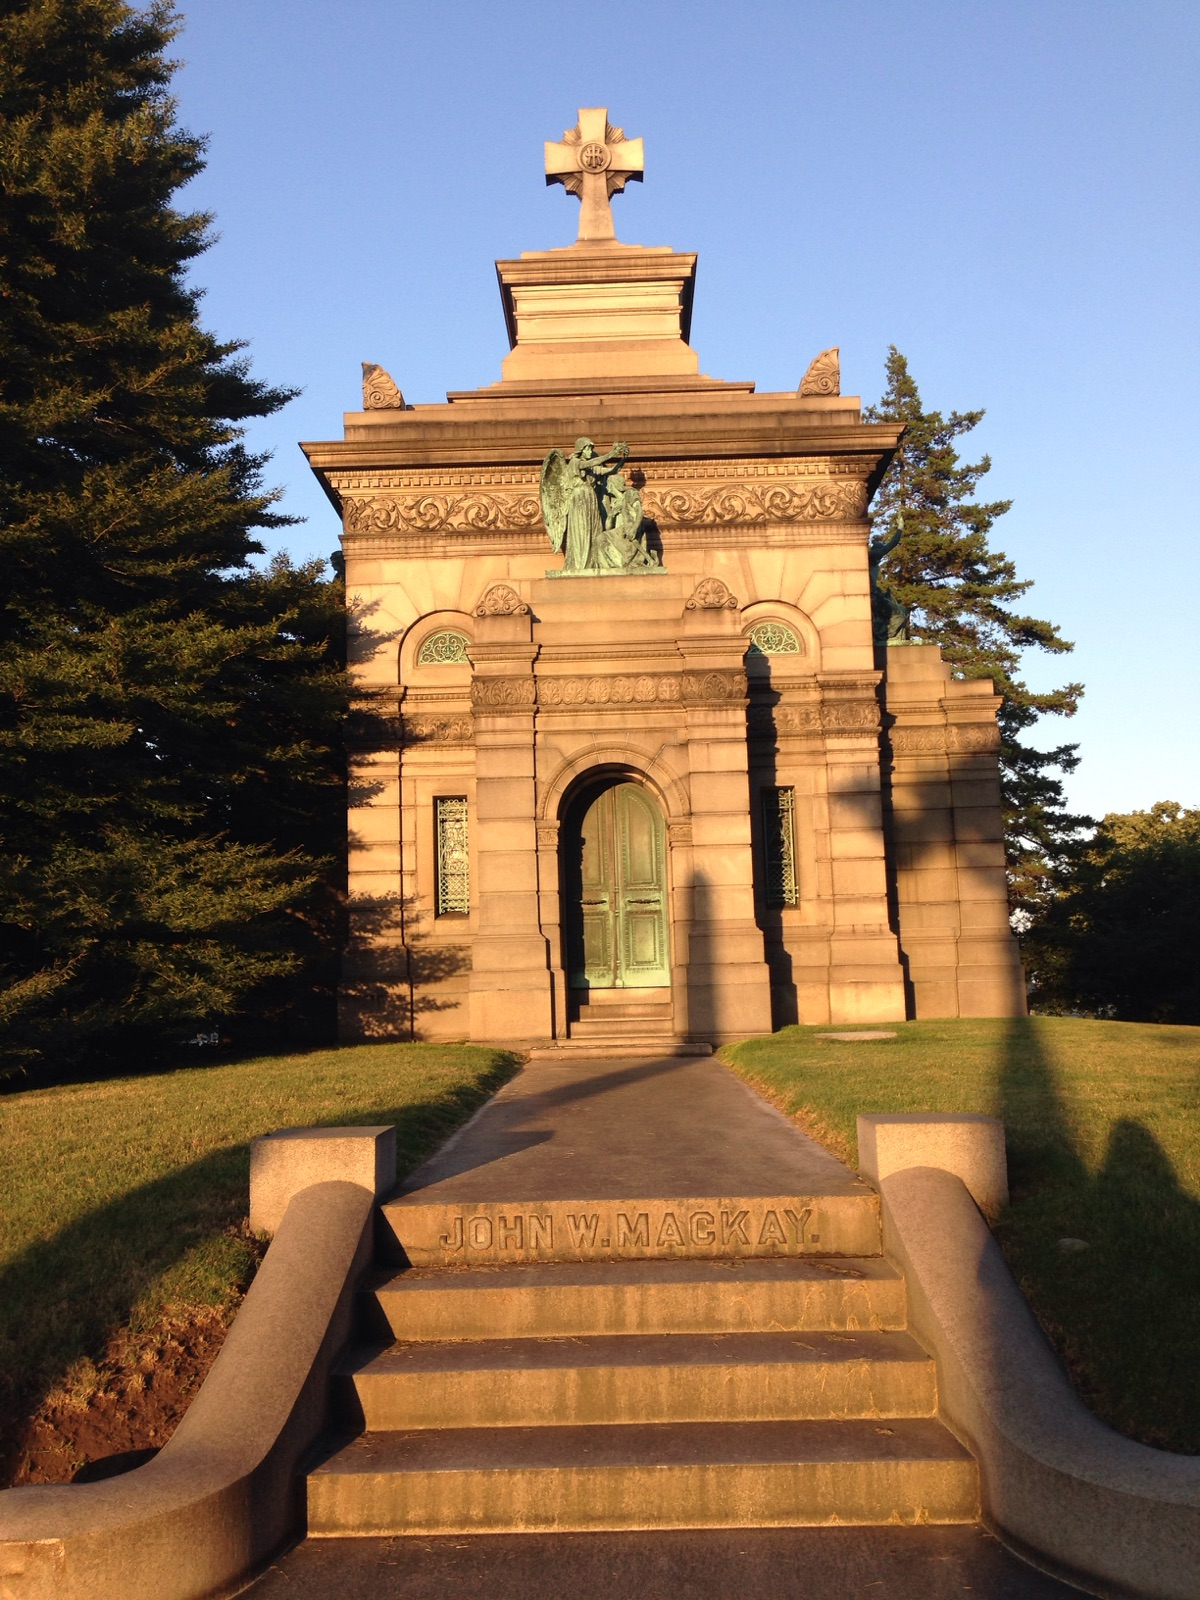 The Mackay Mausoleum, built in 1898 for $250,000.